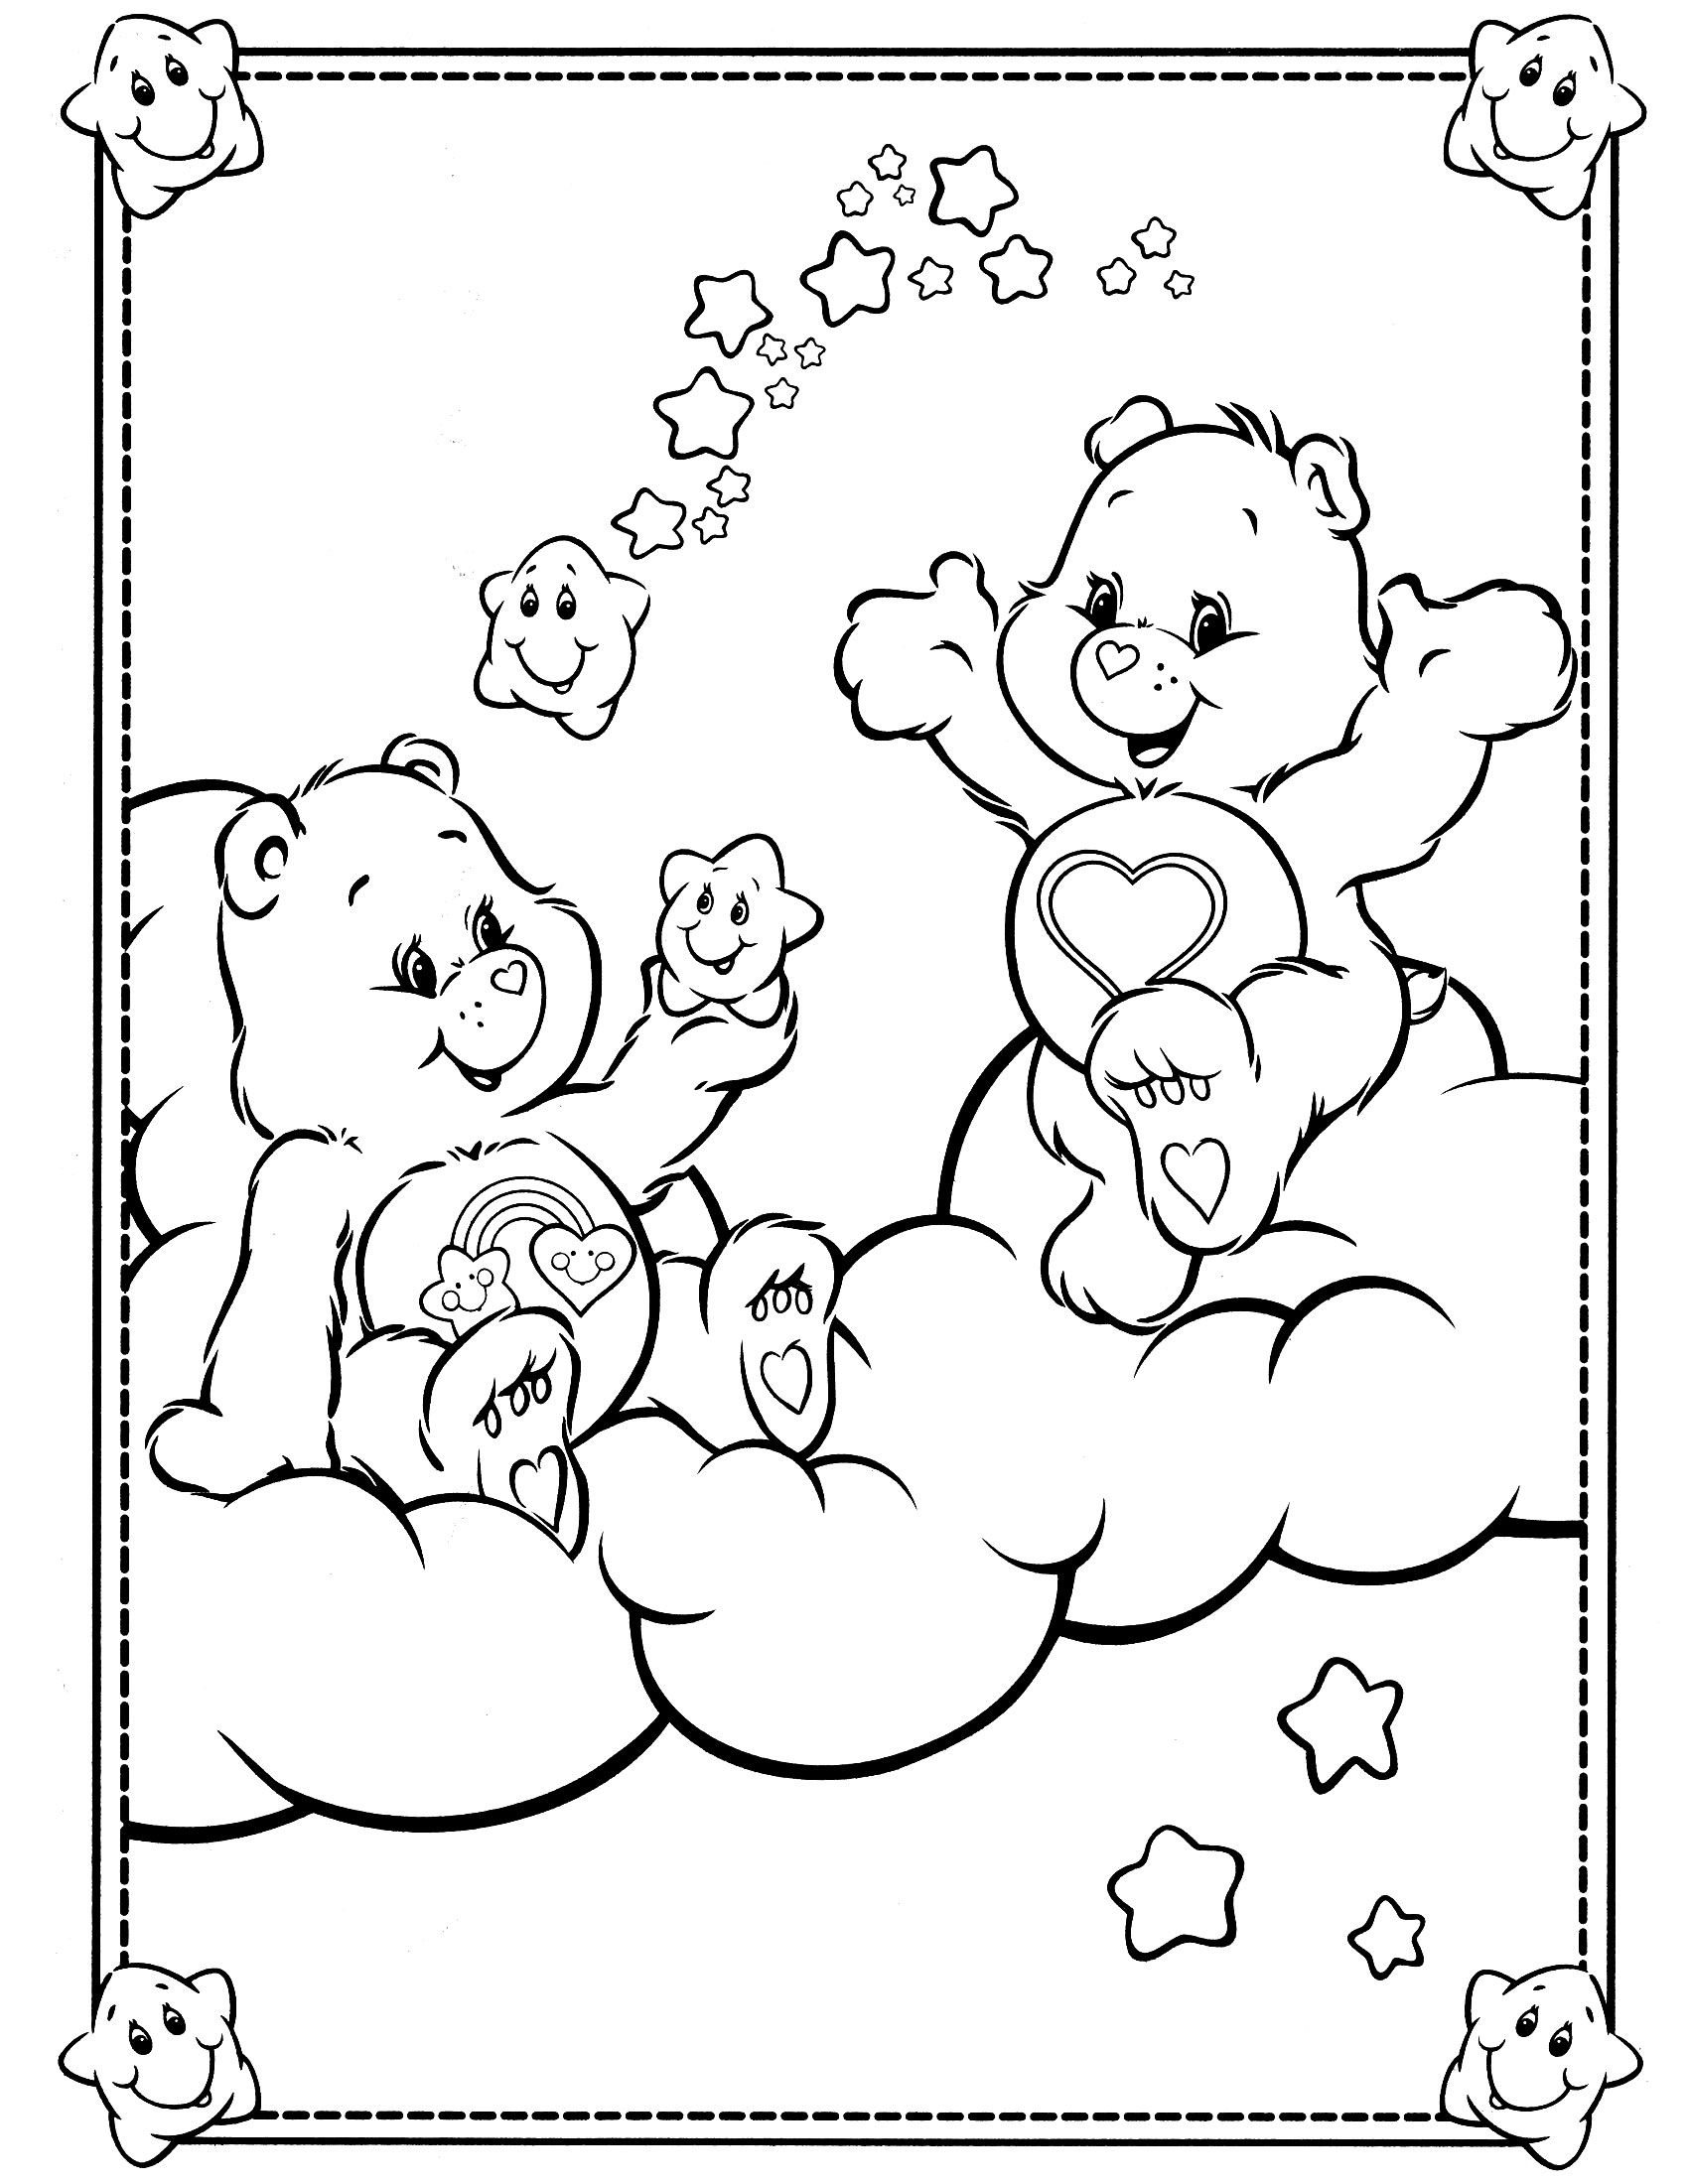 care bears coloring page valentine u0027s pinterest care bears